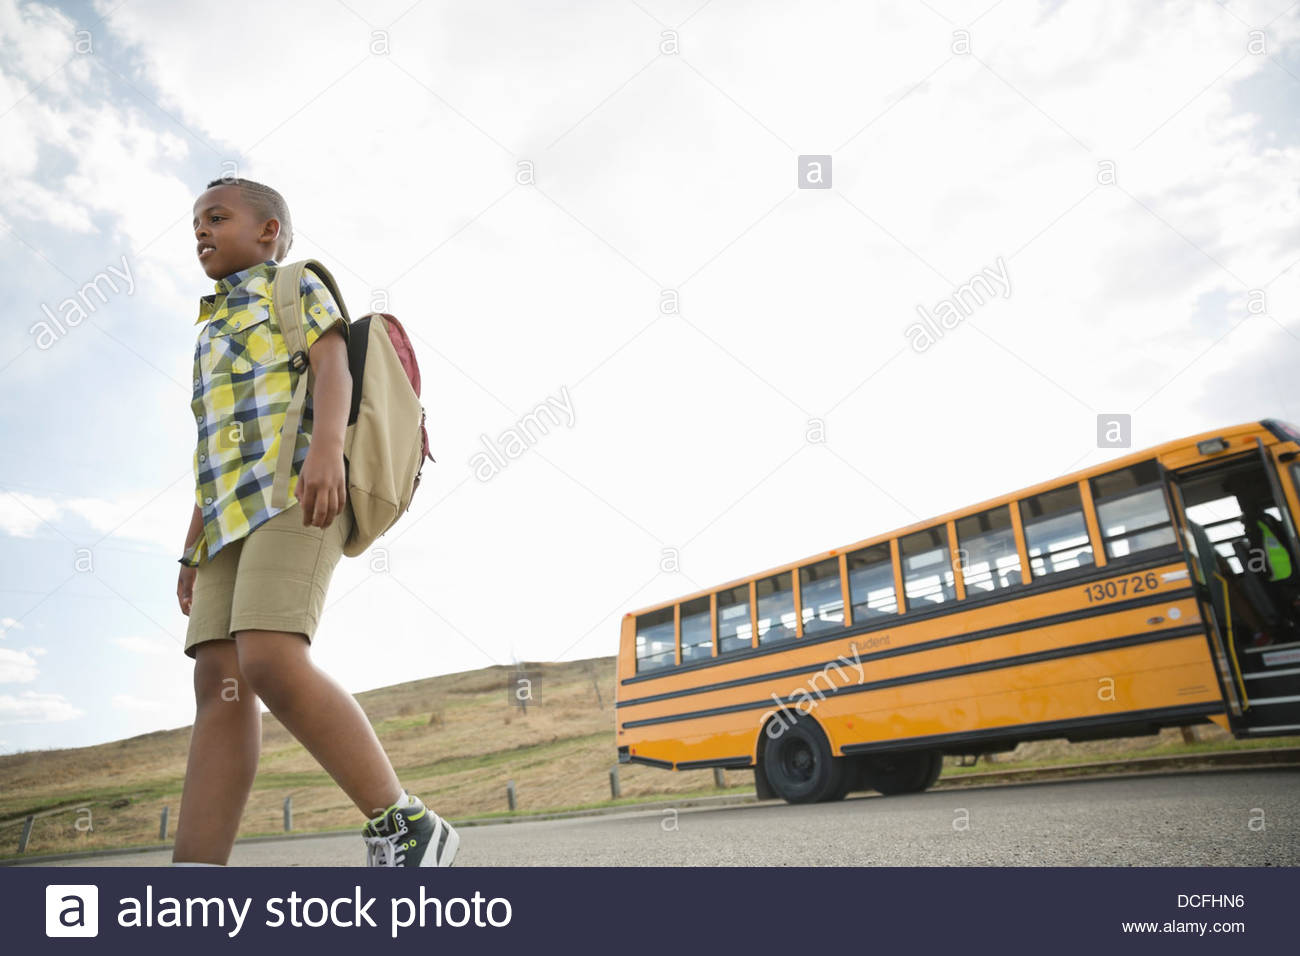 Low angle view of schoolboy walking away from school bus - Stock Image